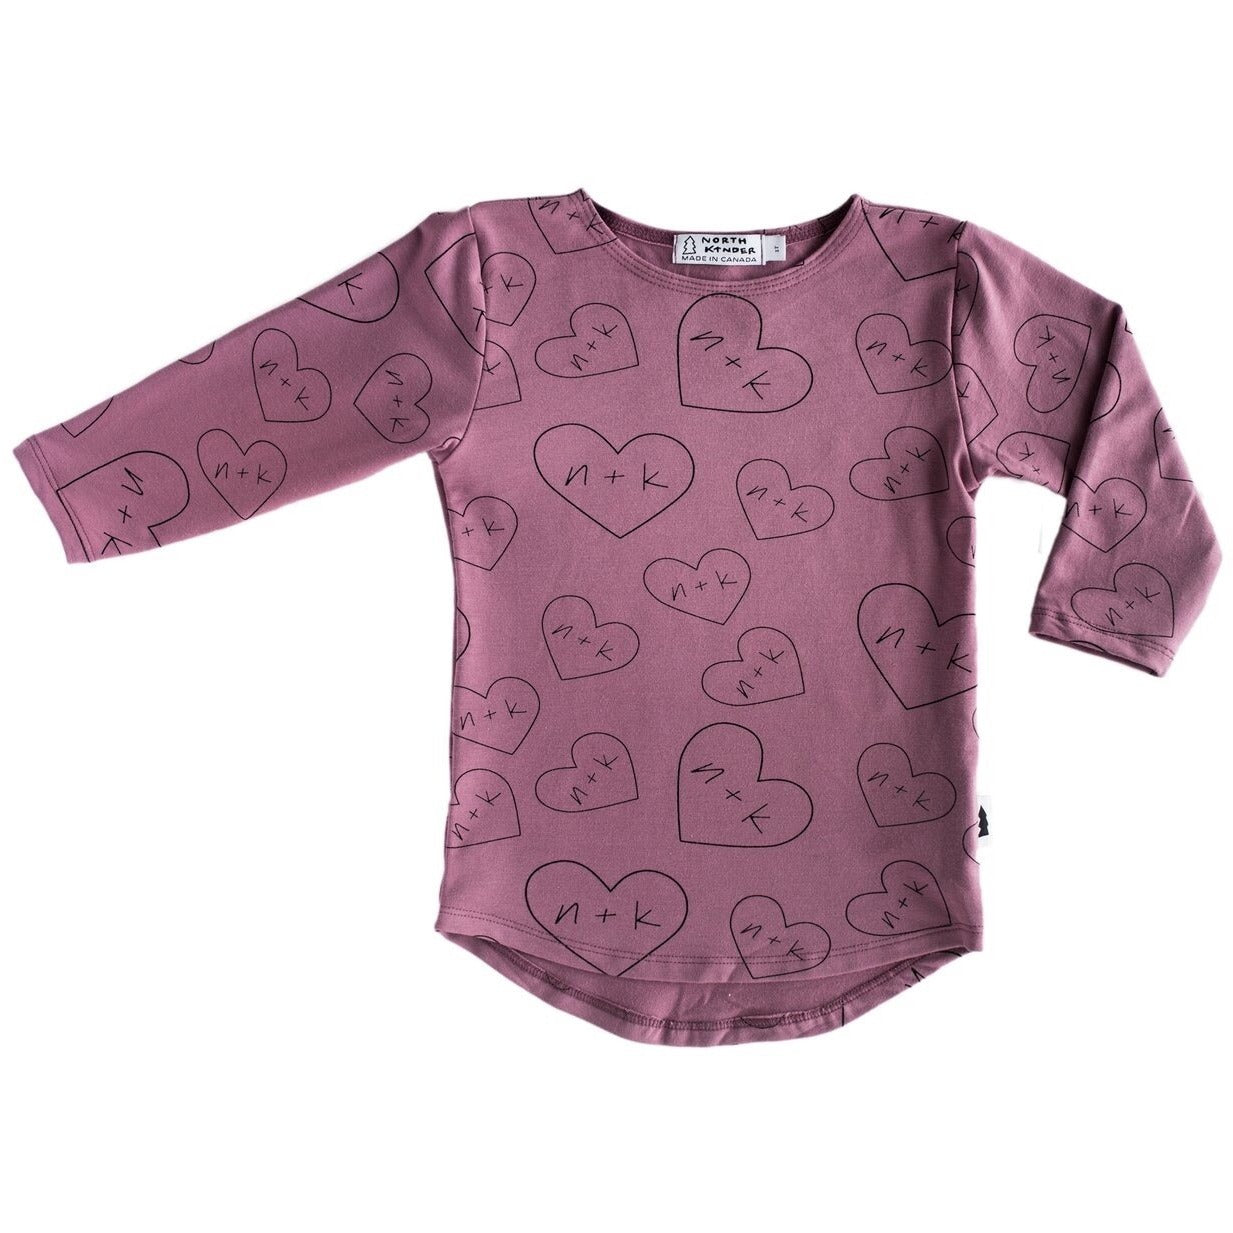 Long Sleeve Shirt (Mauve hearts n+k) - by North Kinder